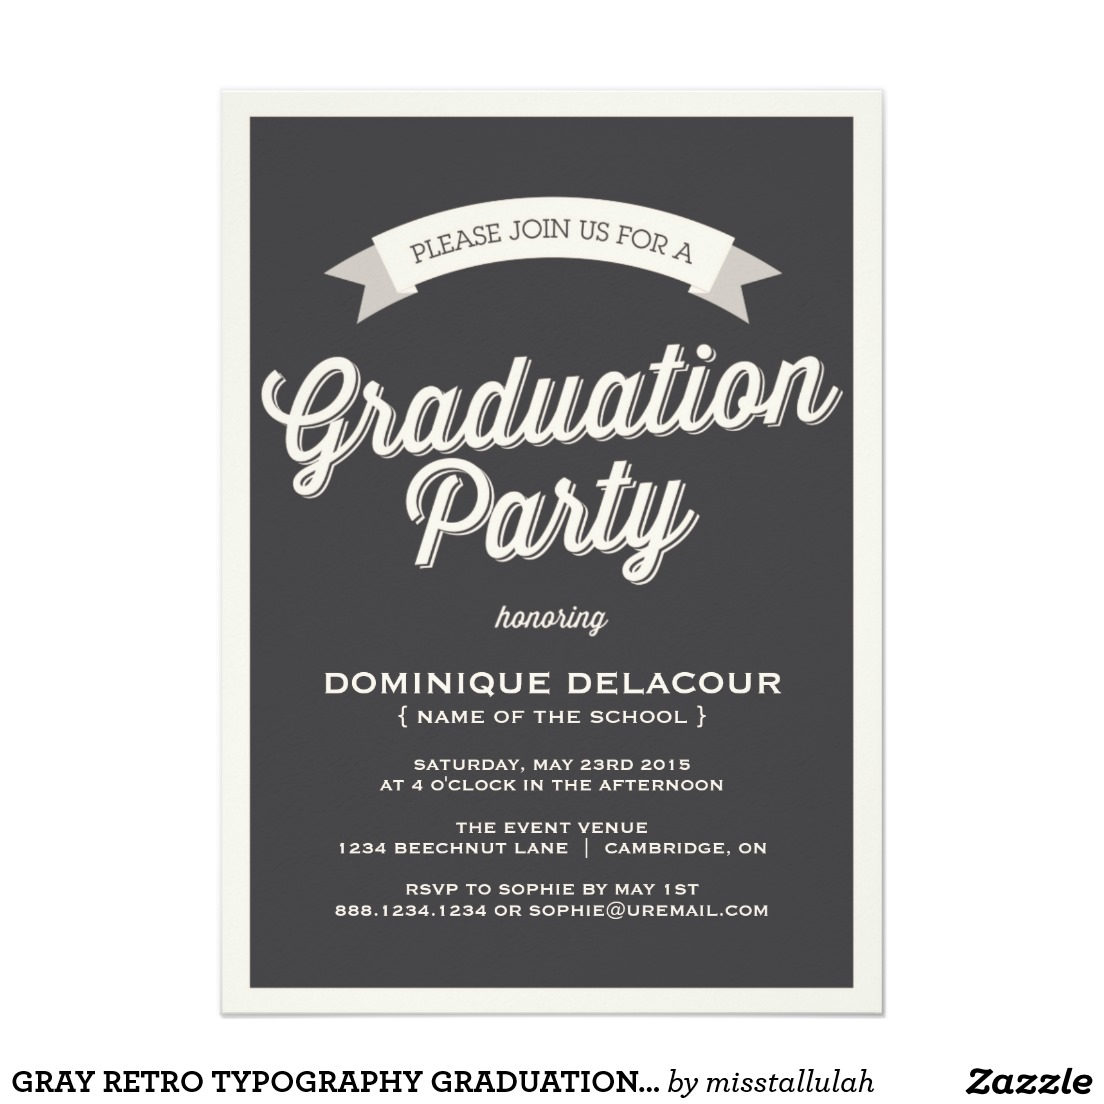 Graduation Party Invitation sansalvaje.Com